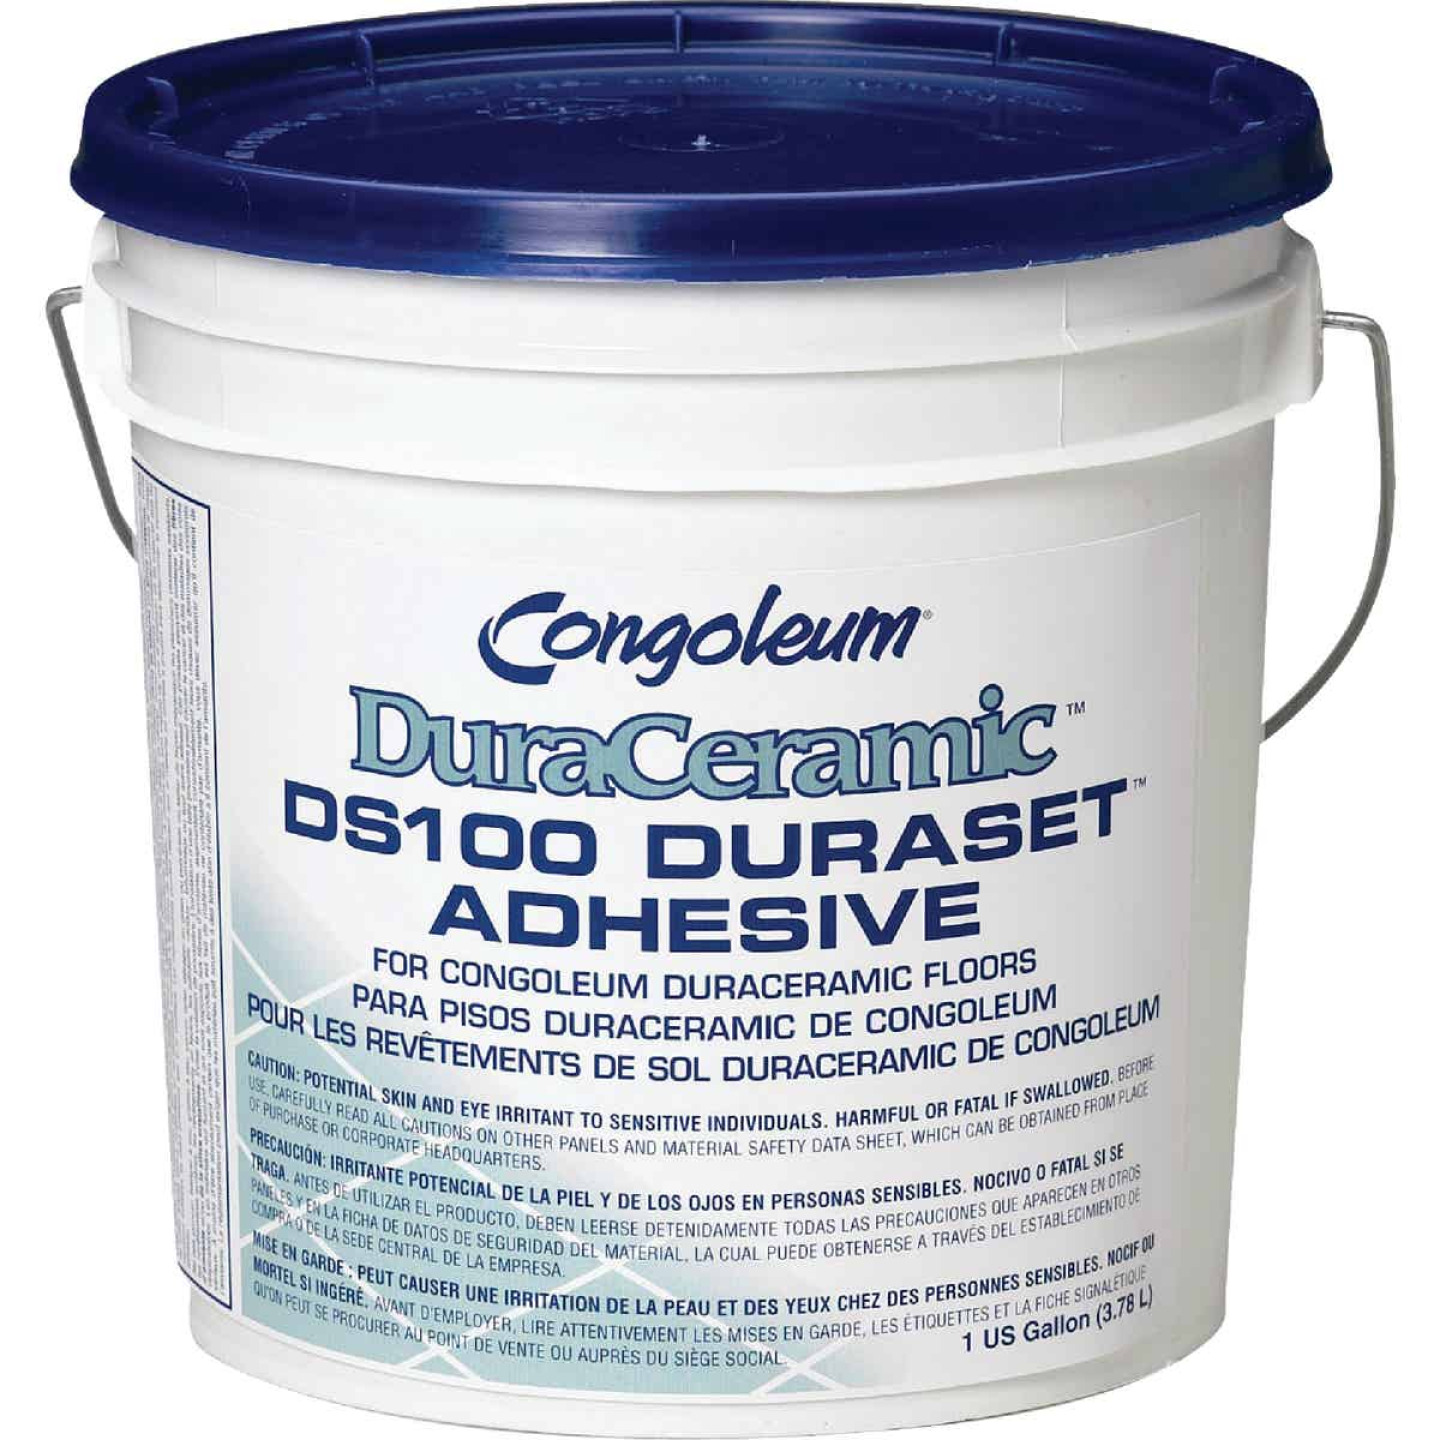 Congoleum DuraCeramic DuraSet Multi-Purpose Floor Adhesive (Quart) Image 1